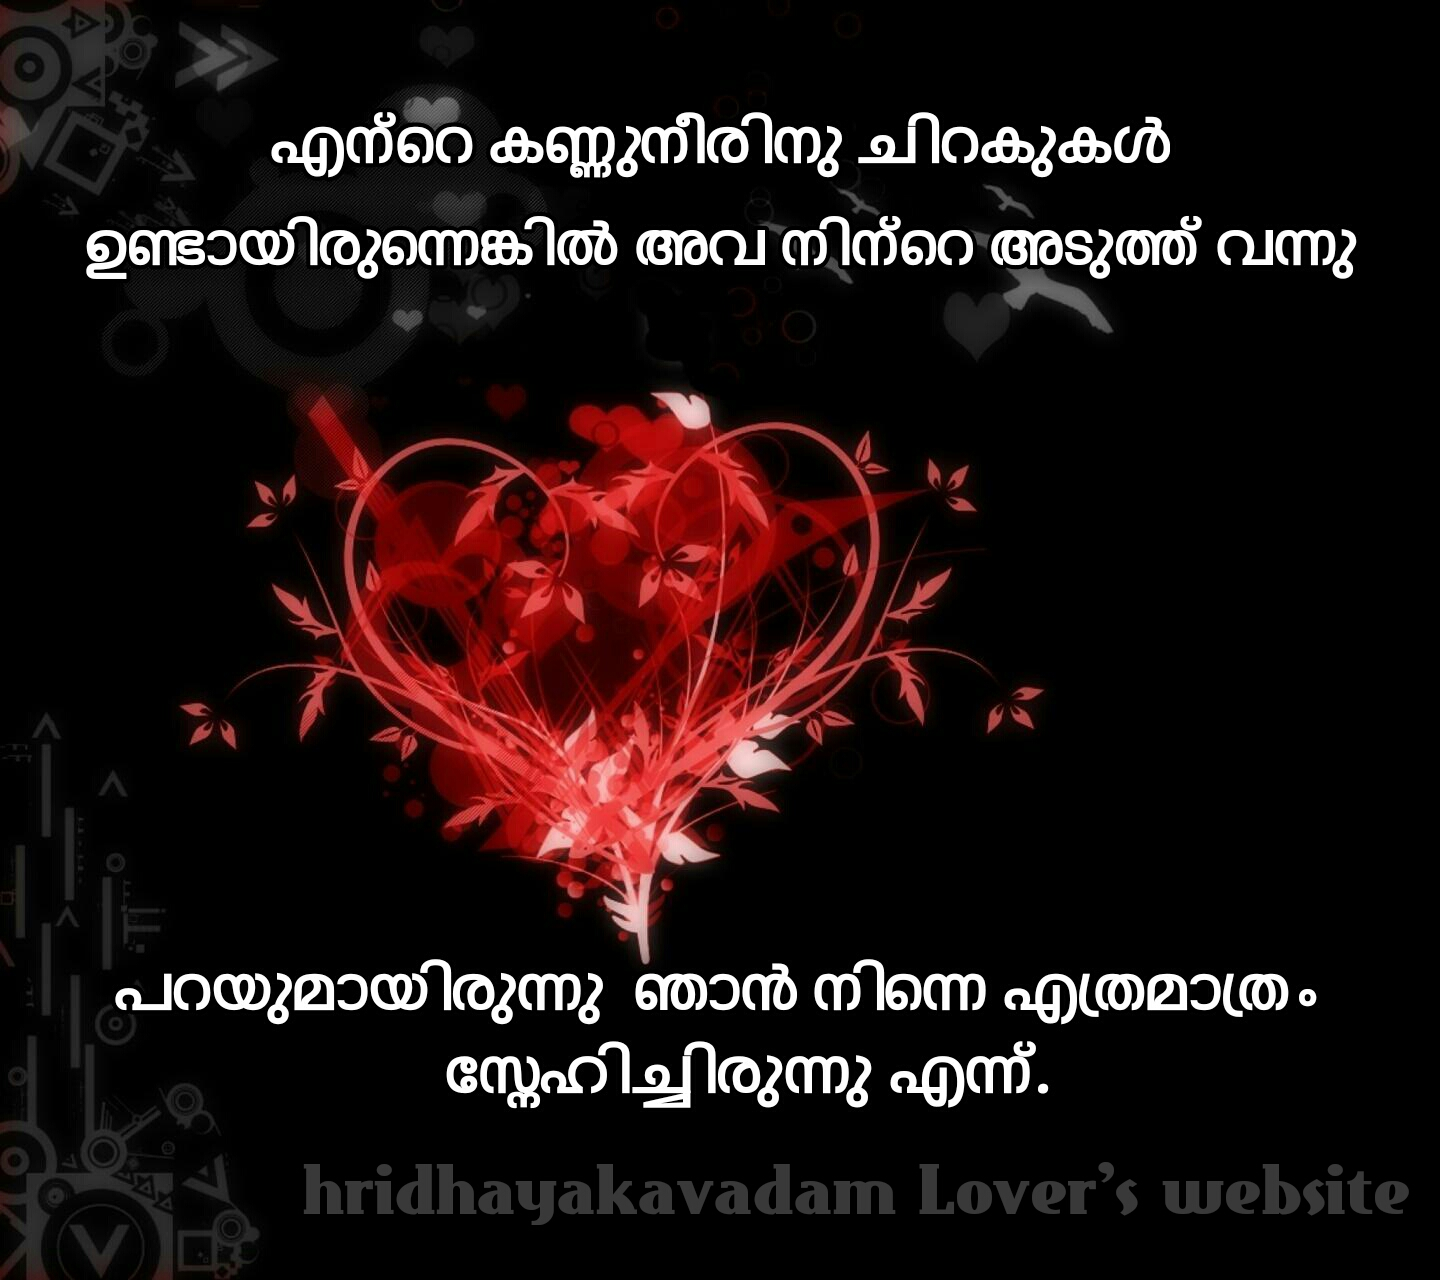 Deep Love Quotes For Her In Malayalam : Love Failure Quotes In Malayalam www.galleryhip.com - The Hippest ...